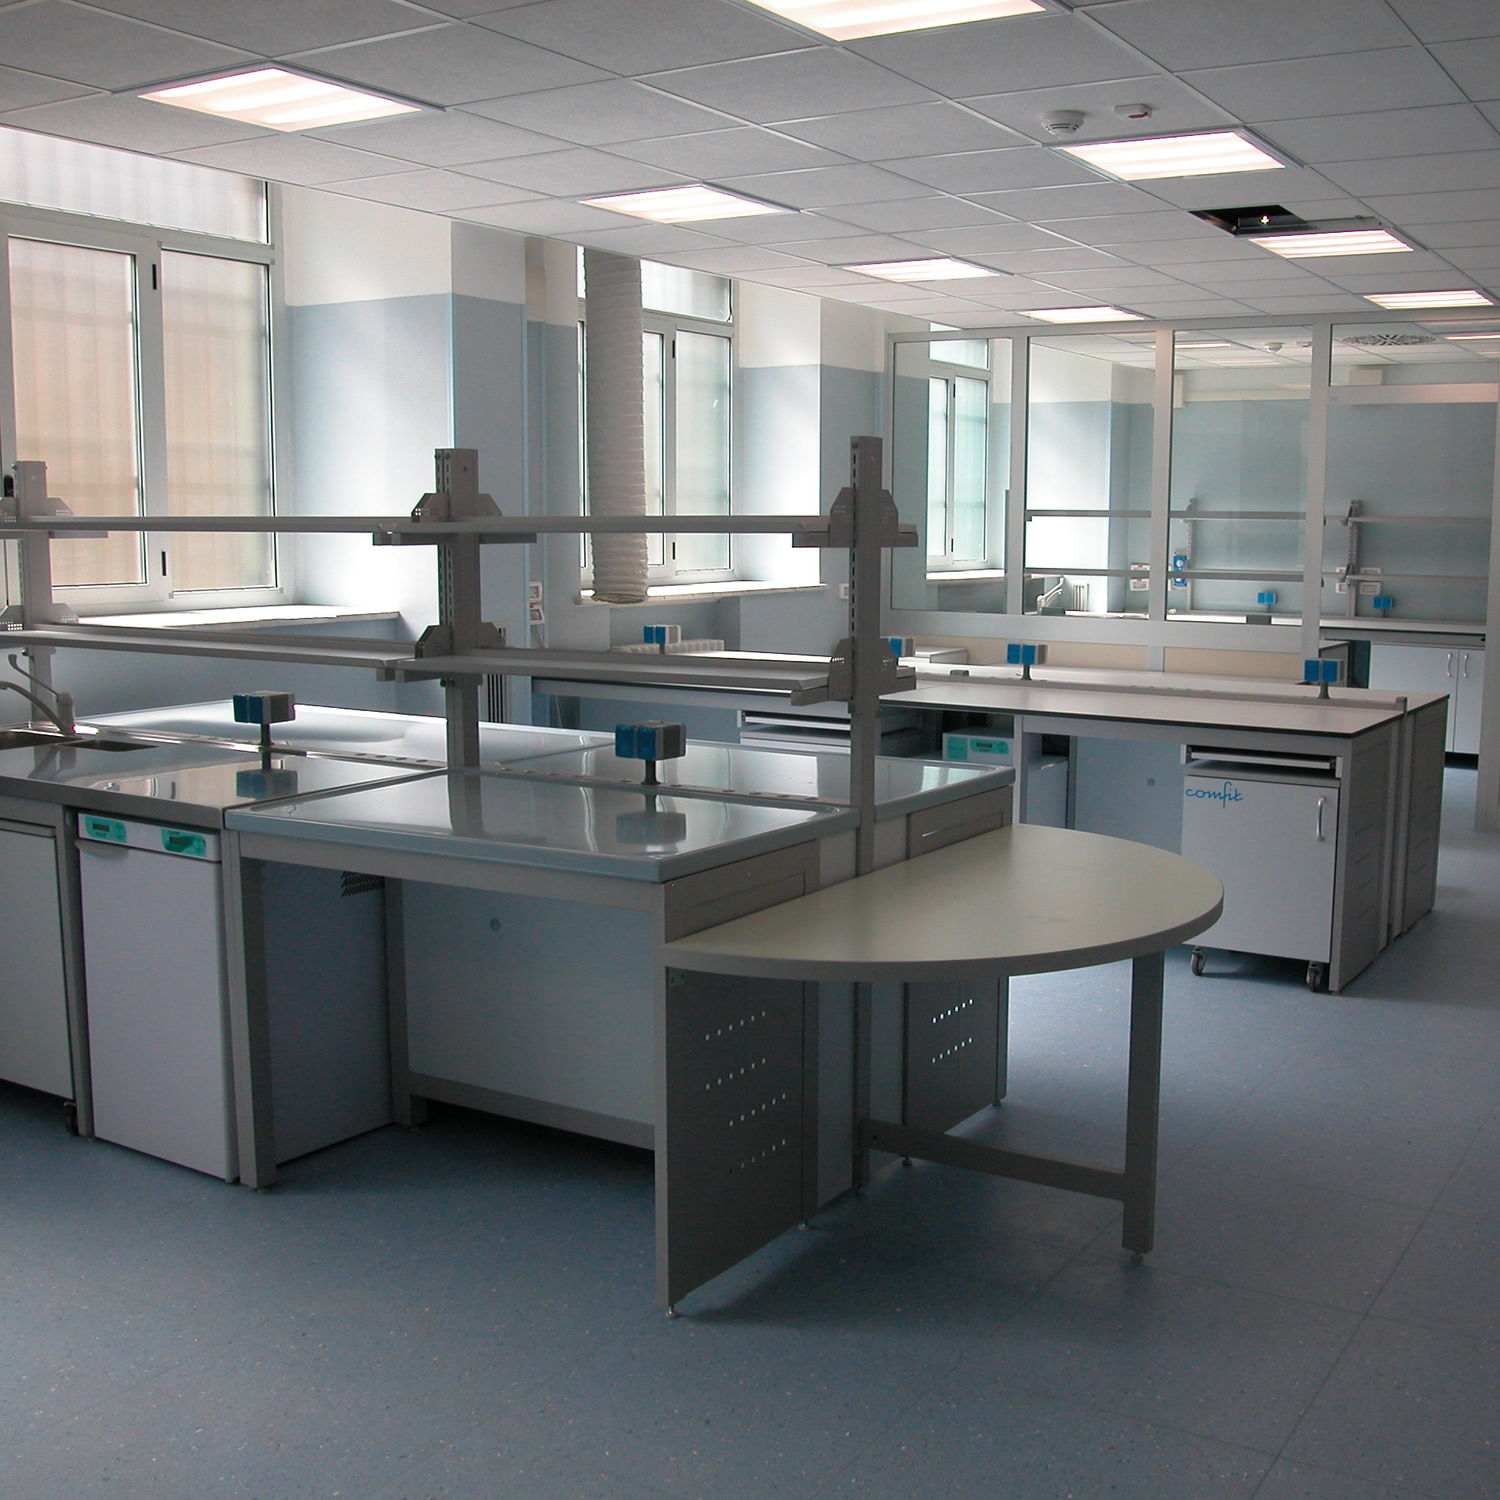 Histopathology Laboratory Bench / Modular / With Sink / With Shelves